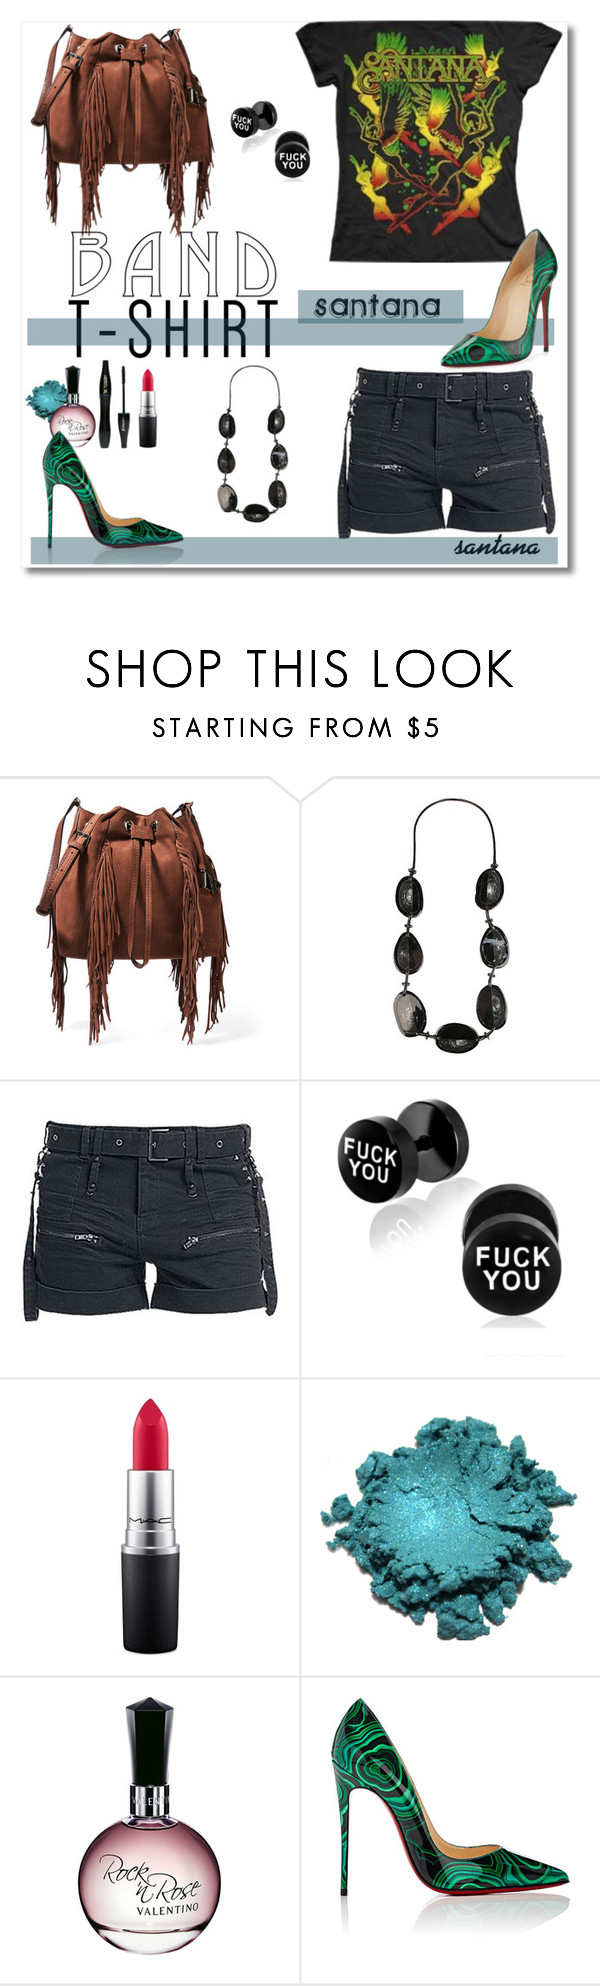 """""""Santana"""" by psyche8778 ❤ liked on Polyvore featuring Diane Von Furstenberg, Carlos by Carlos Santana, Lancôme, MAC Cosmetics, Nordstrom, Christian Louboutin, bandtshirt and bandtee"""